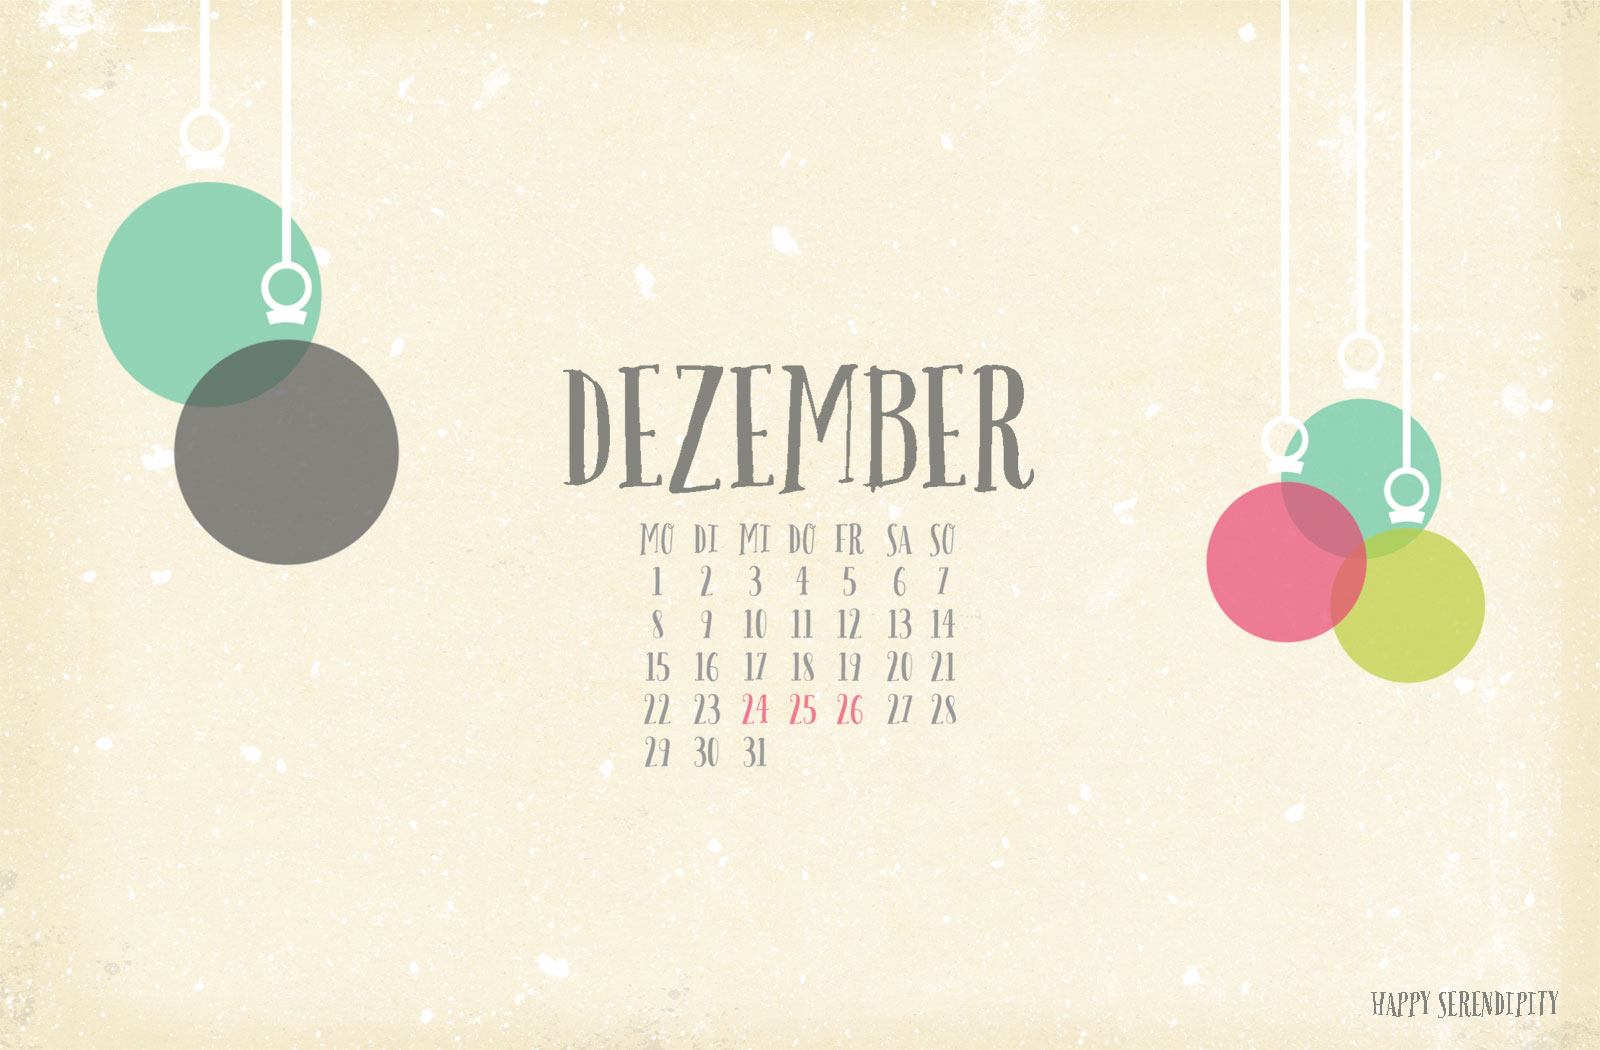 dezember-desktop-wallpaper-kalender-happyserendipity-1600x1050